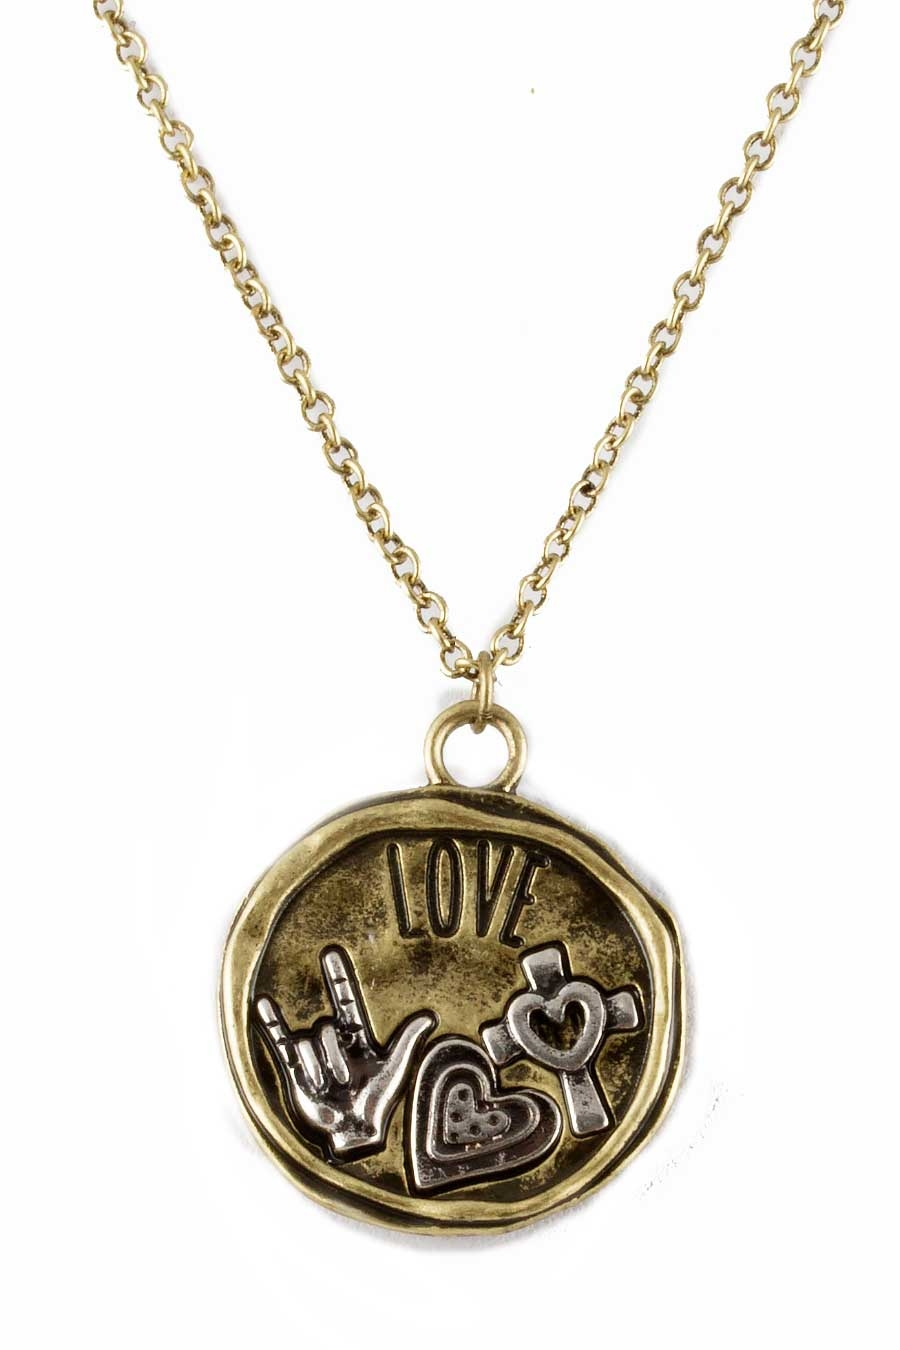 TWO-TONE LOVE NECKLACE  - orangeshine.com